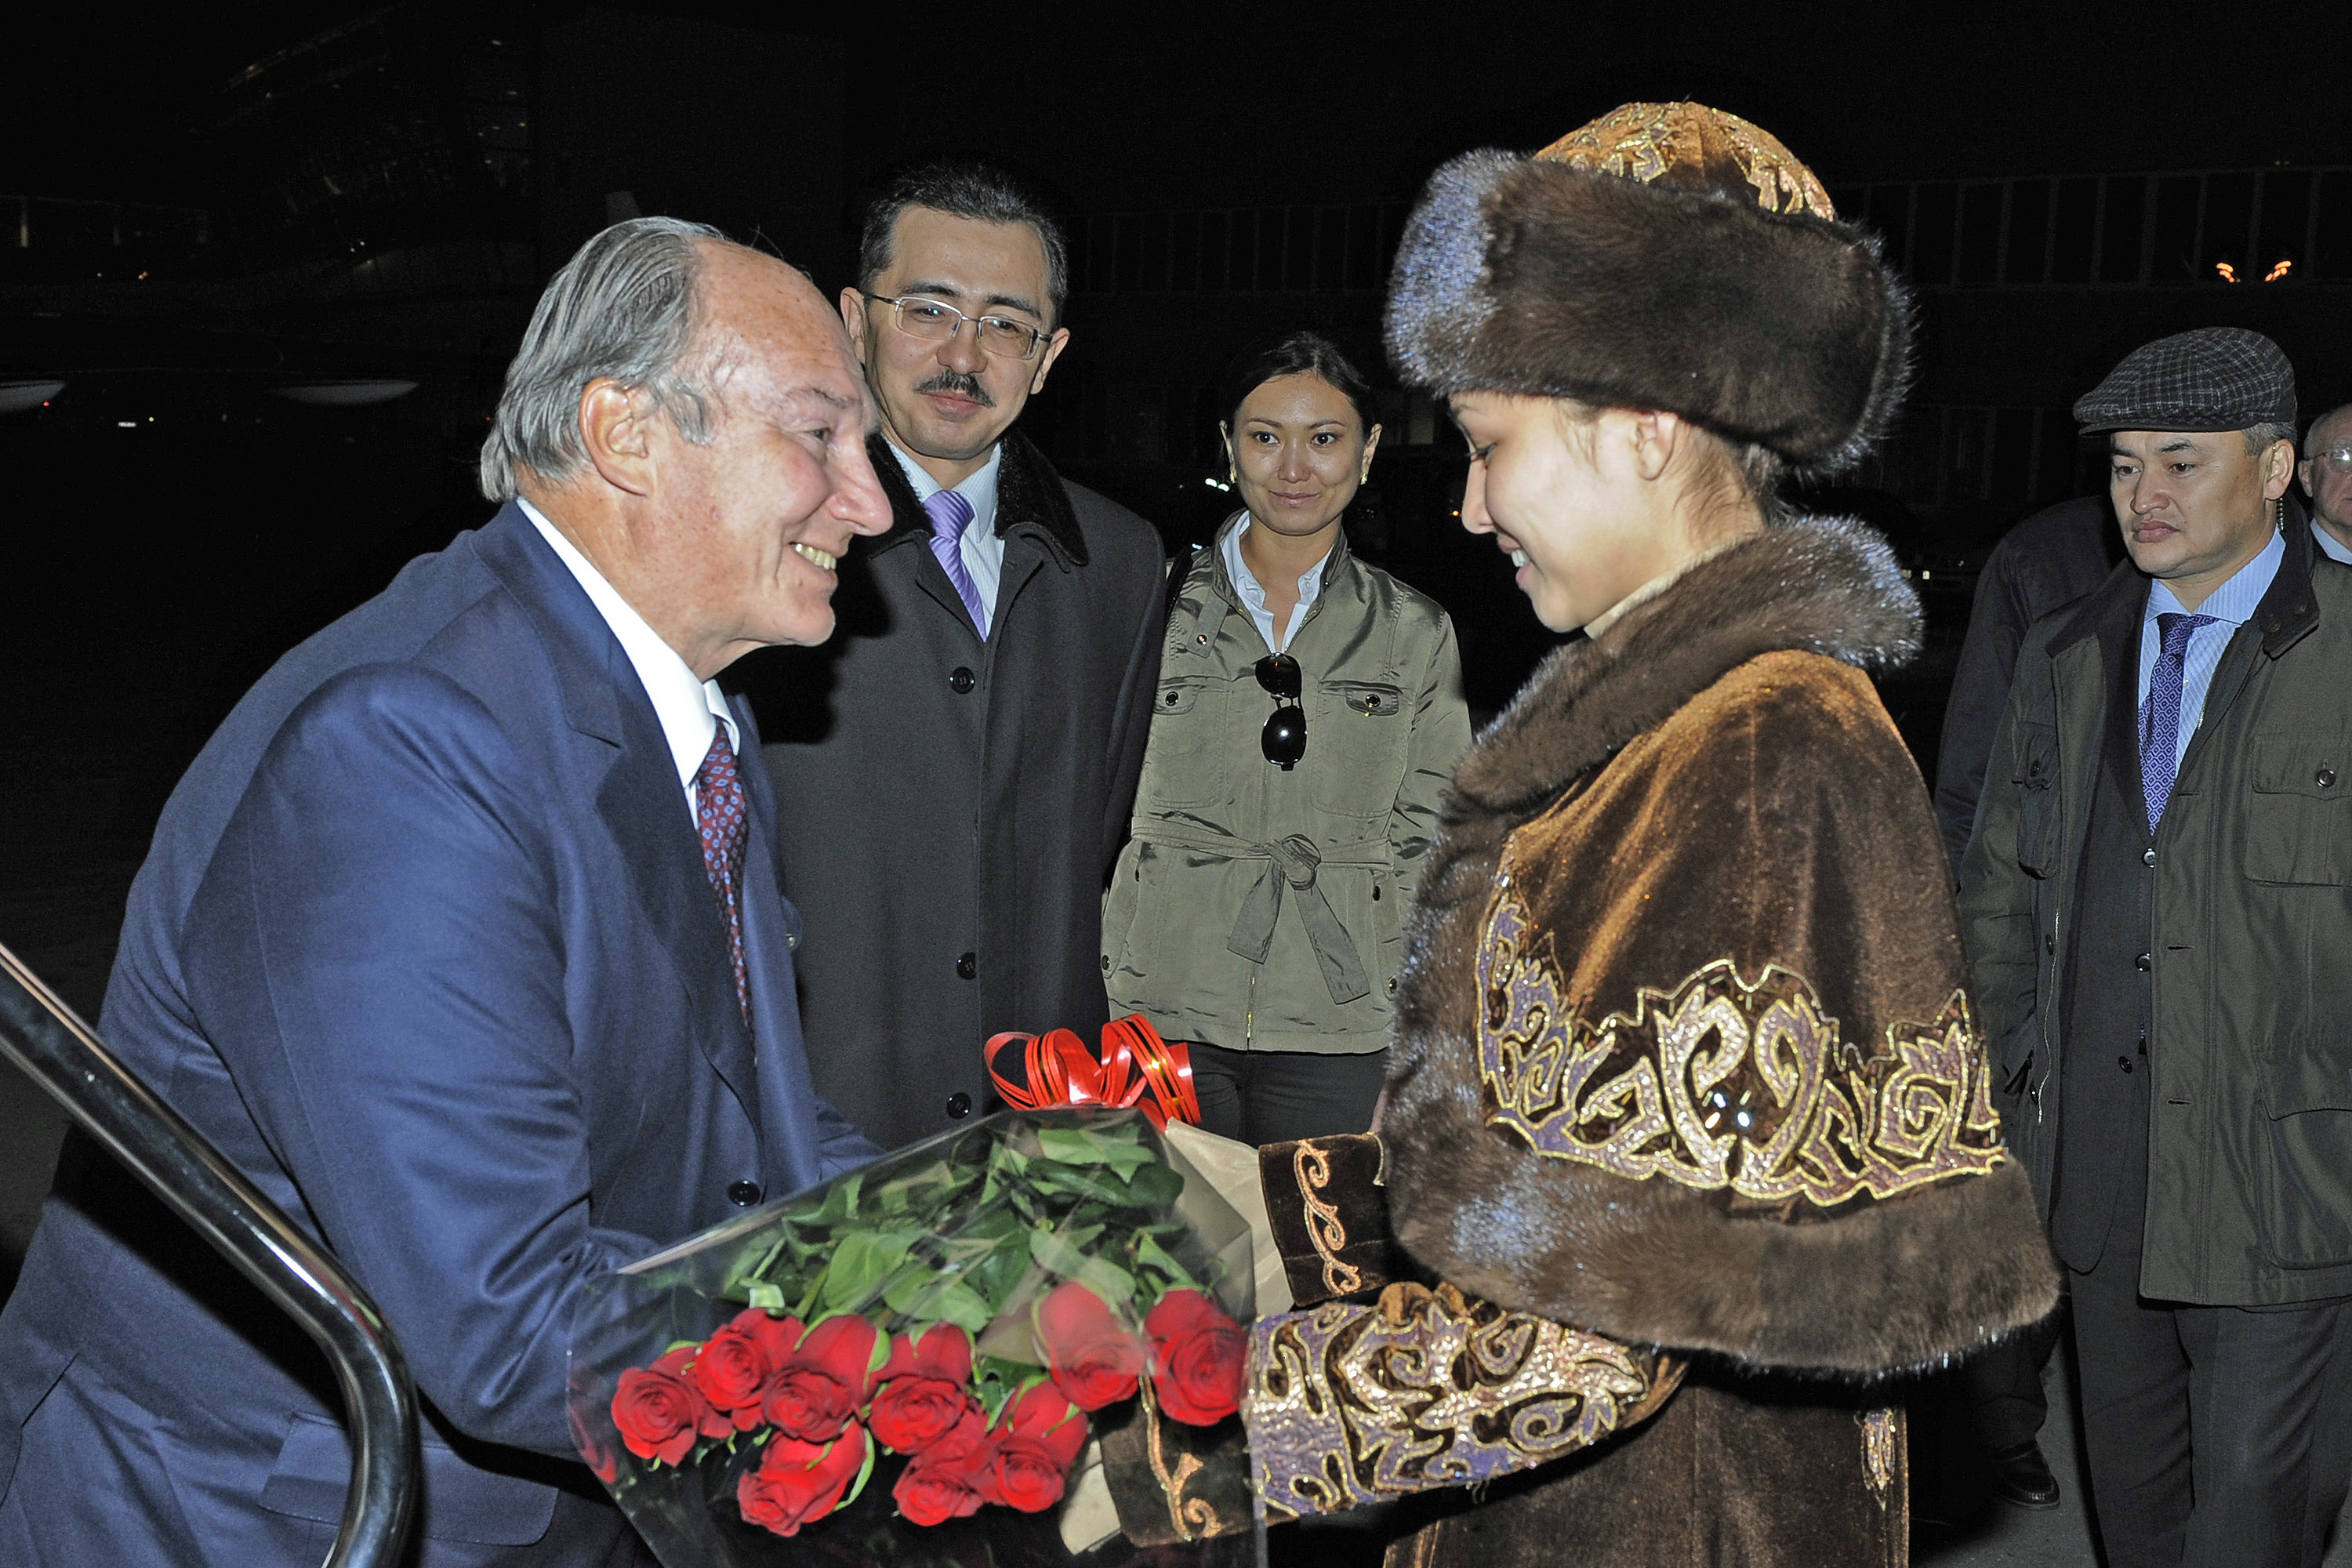 Arriving in Astana at the start of his Golden Jubilee visit to Kazakhstan, Mawlana Hazar Imam is greeted with a traditional Kazakh welcome as government officials look on. Photo: Gary Otte